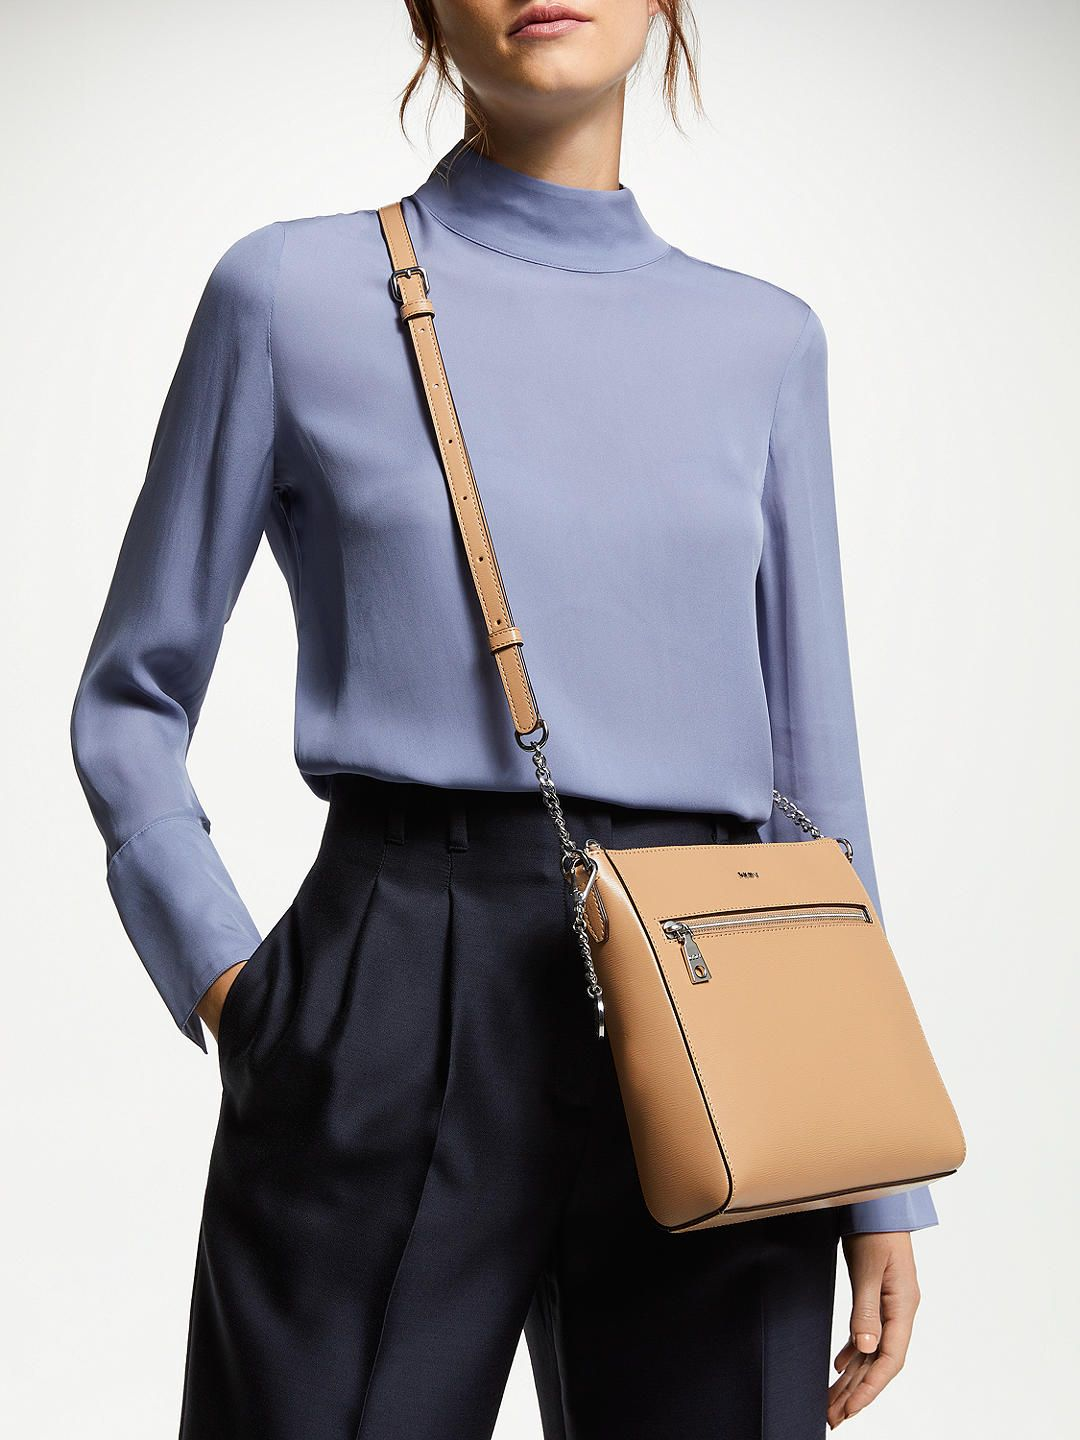 a92e3d6da BuyDKNY Bryant Leather Large Zip Top Cross Body Bag, Camel Online at  johnlewis.com